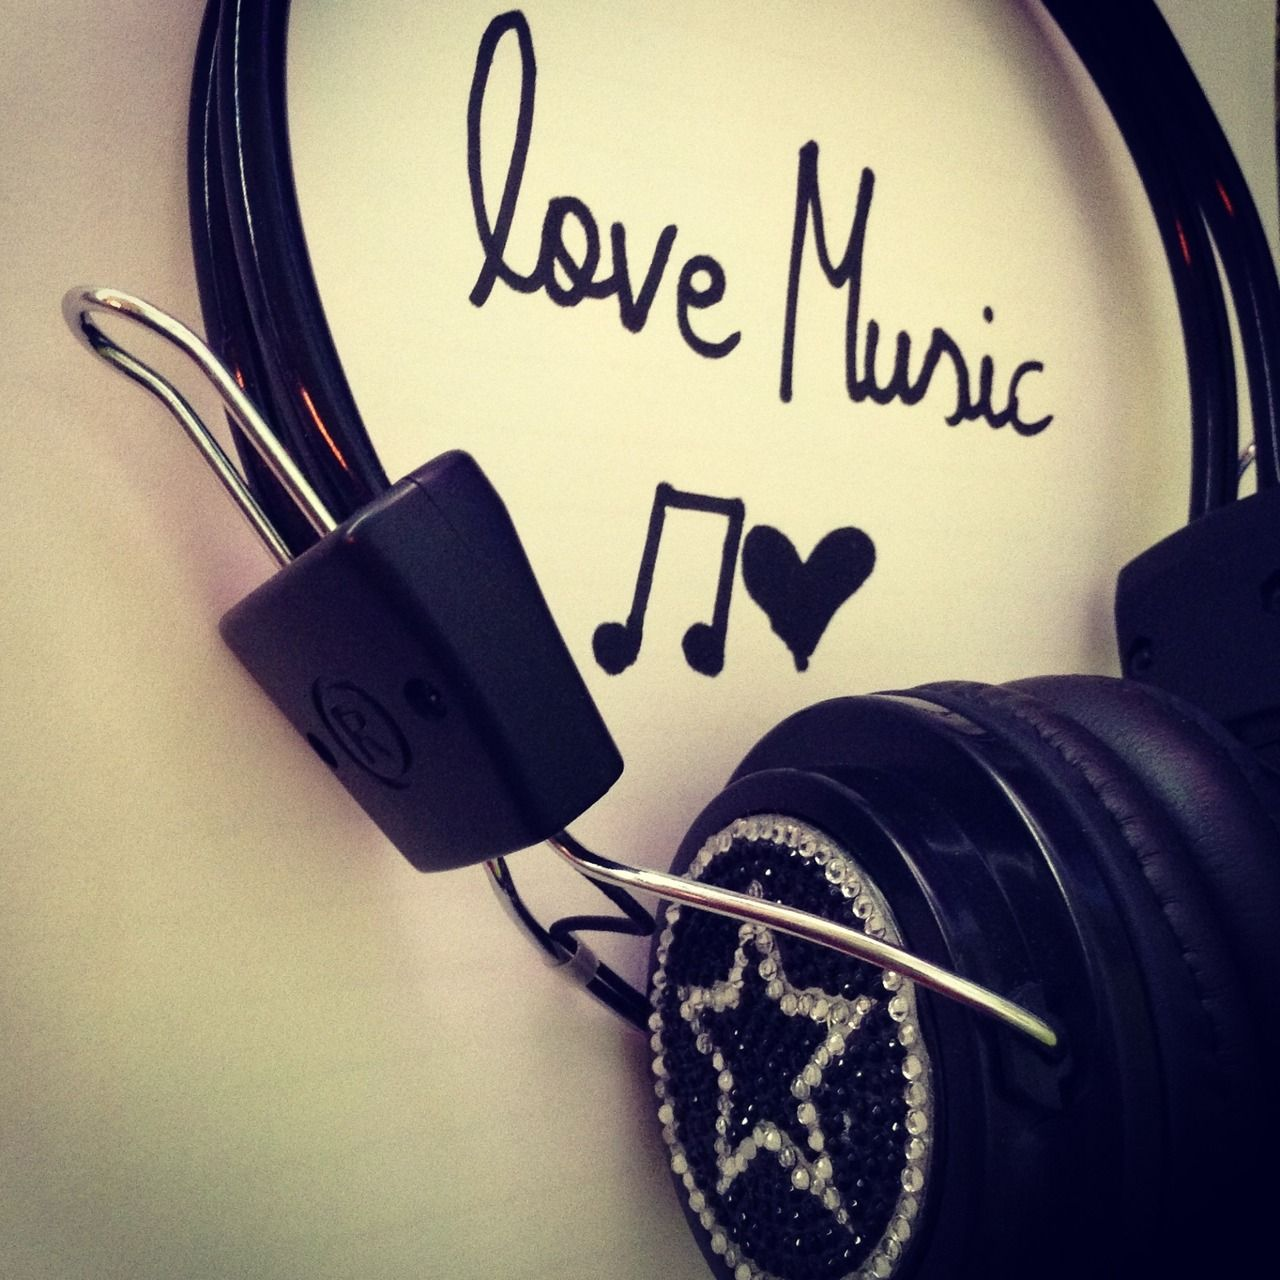 Find Images And Videos About Love Amazing And Music On We Heart It The App To Get Lost In What You Love Music Wallpaper Music Images Iphone Wallpaper Music